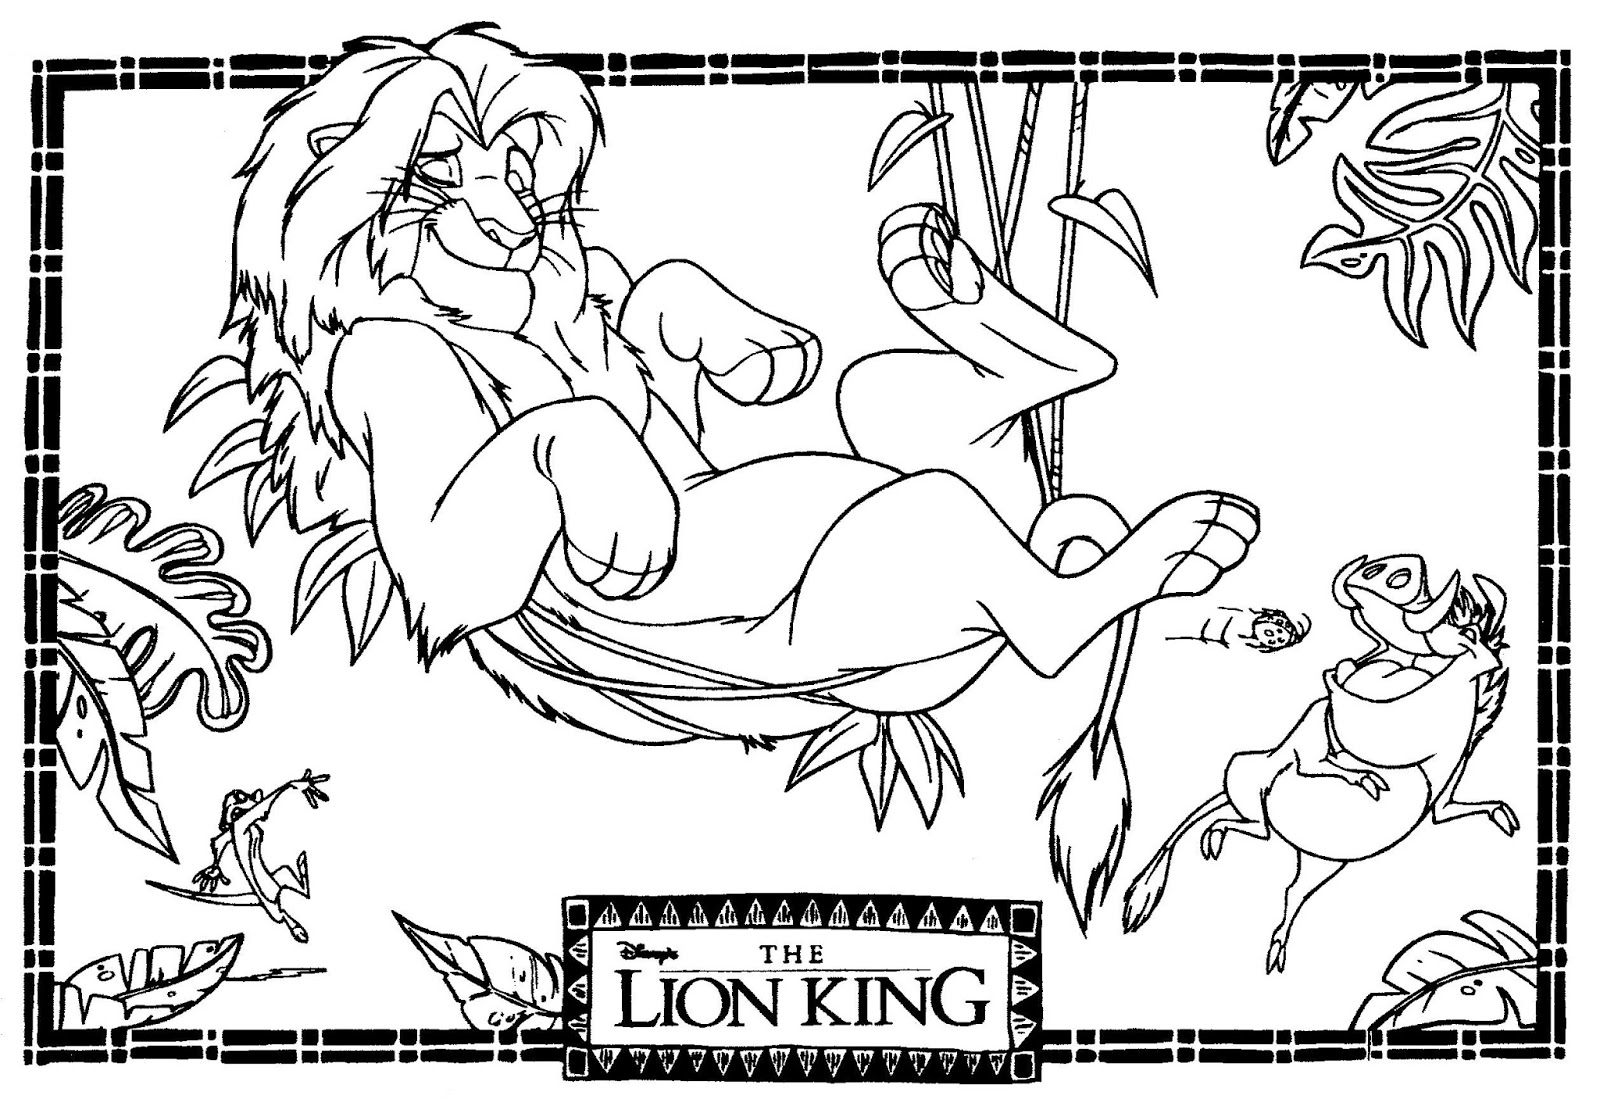 Mostly Paper Dolls Too The Lion King Movie Coloring Contest